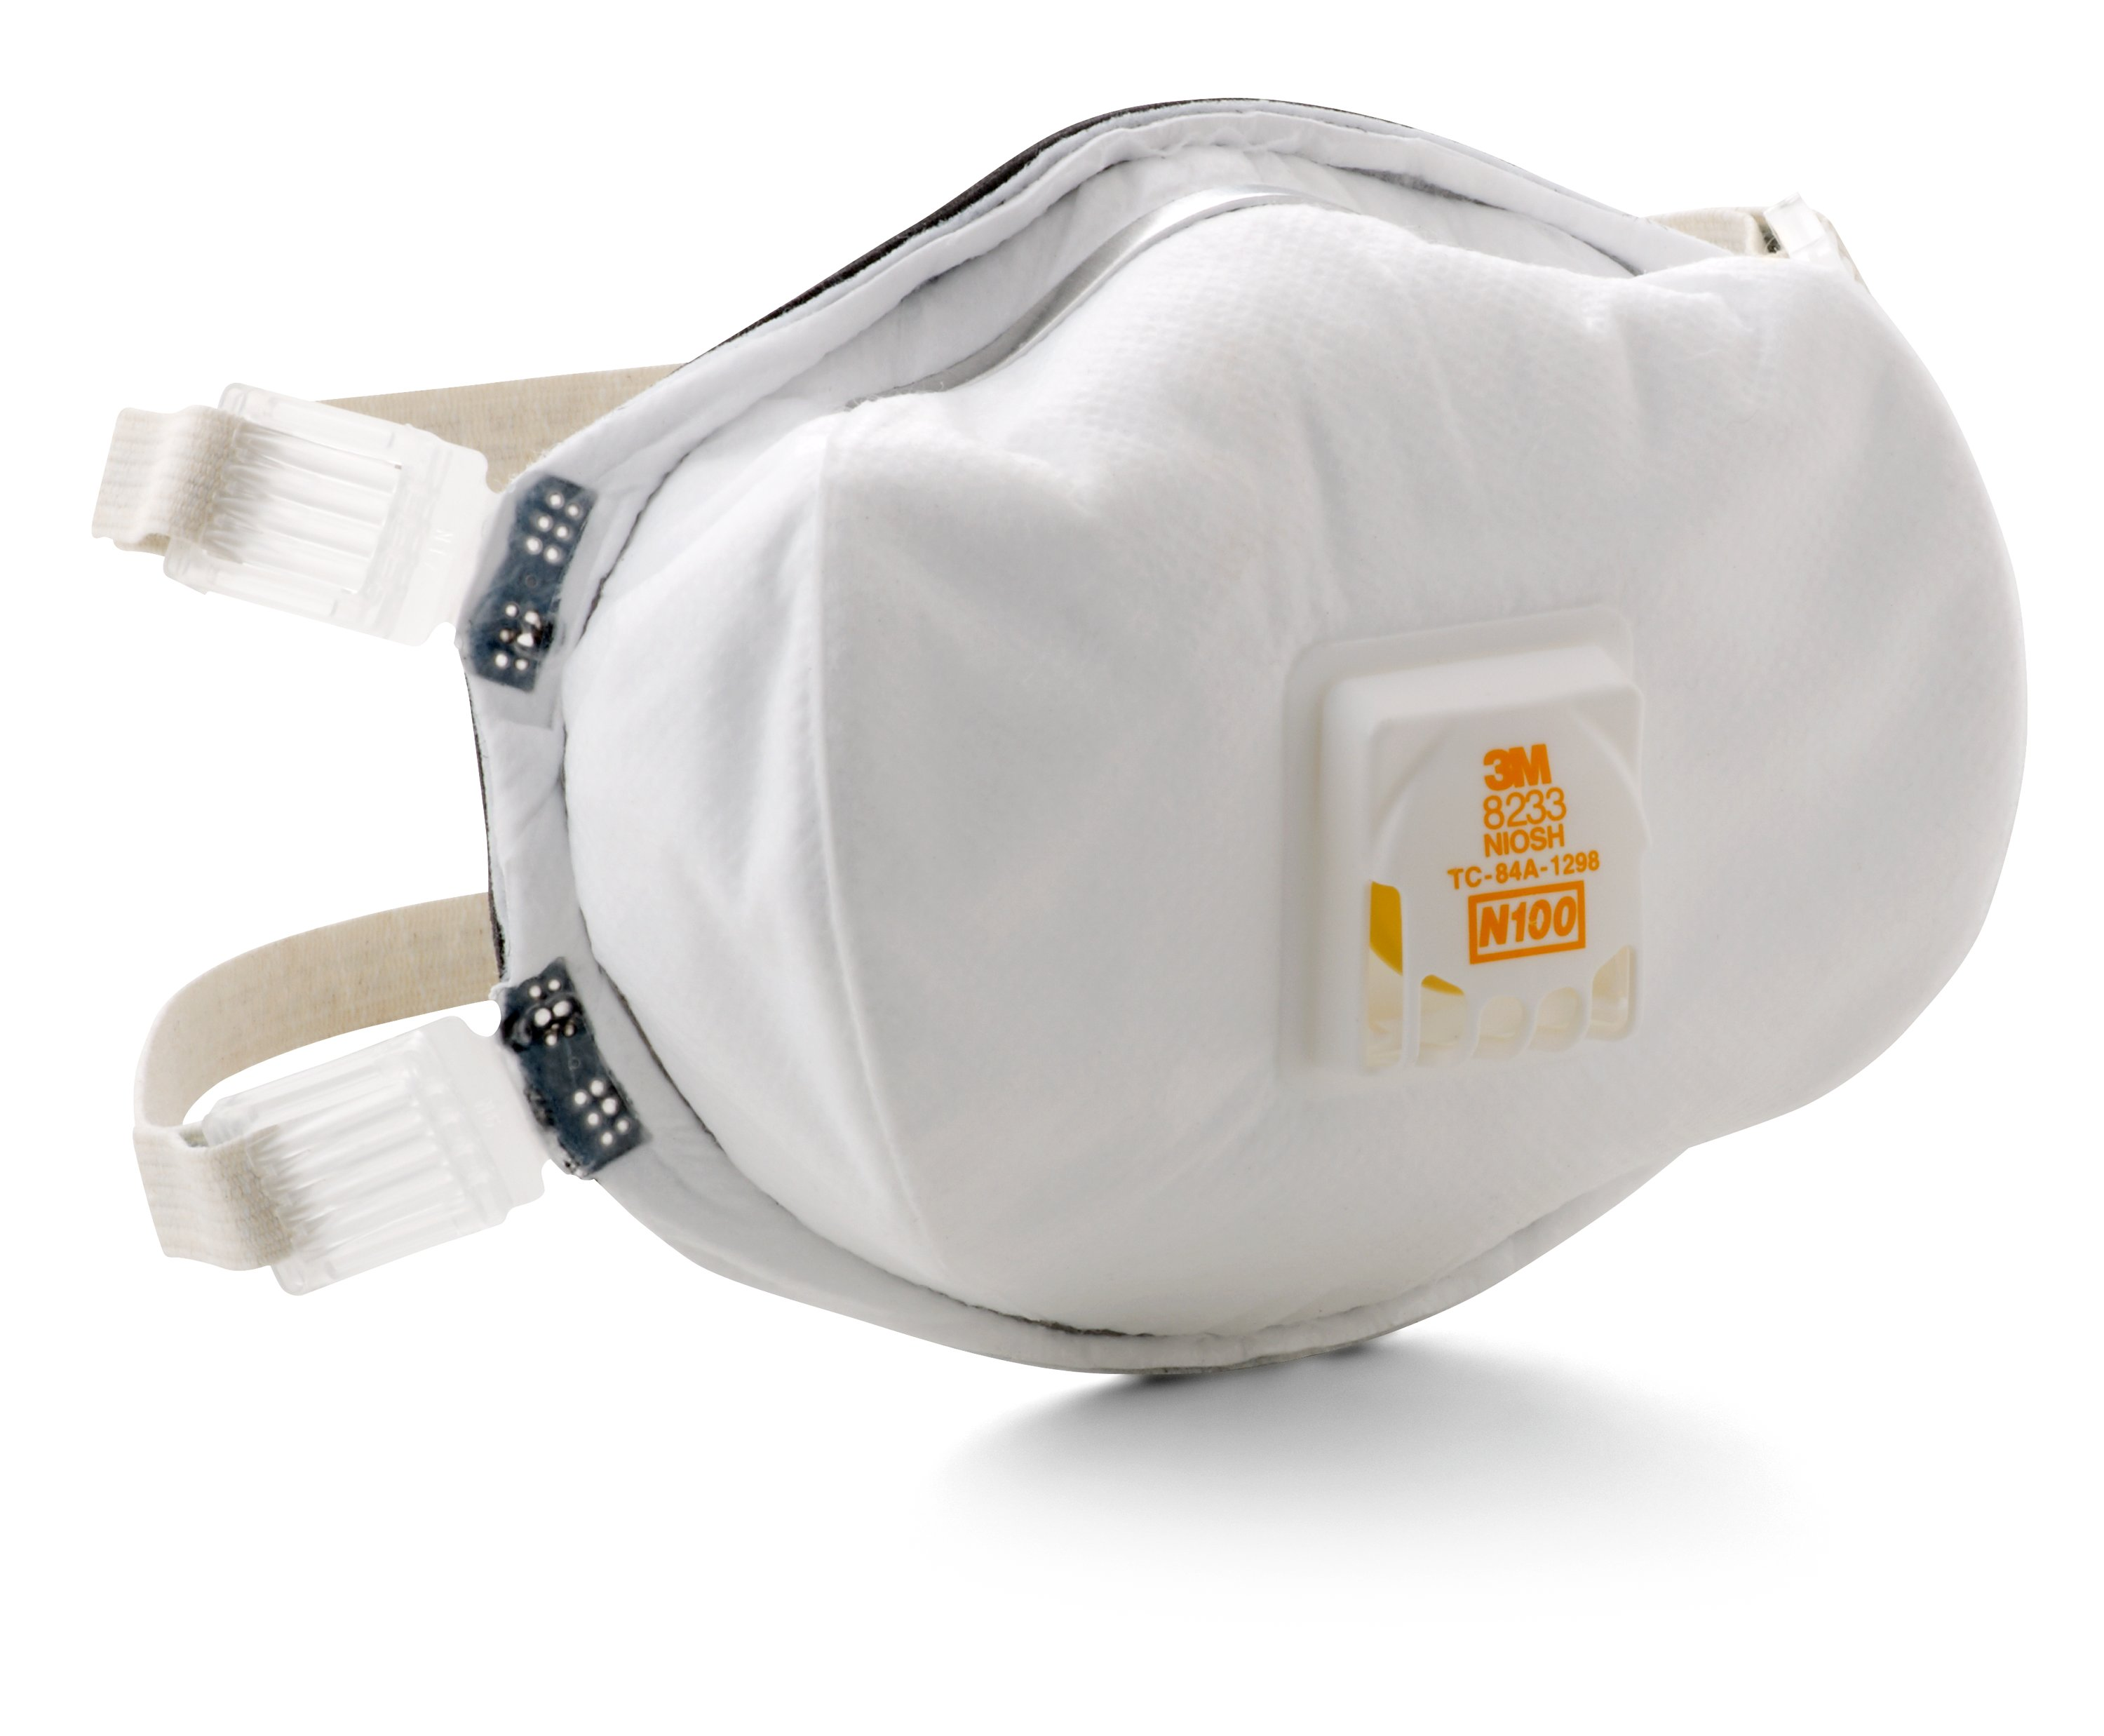 https://www.ideadigitalcontent.com/files/11579/ID-PIC-v1-3mtm-particulate-respirator-8233-n100.jpg